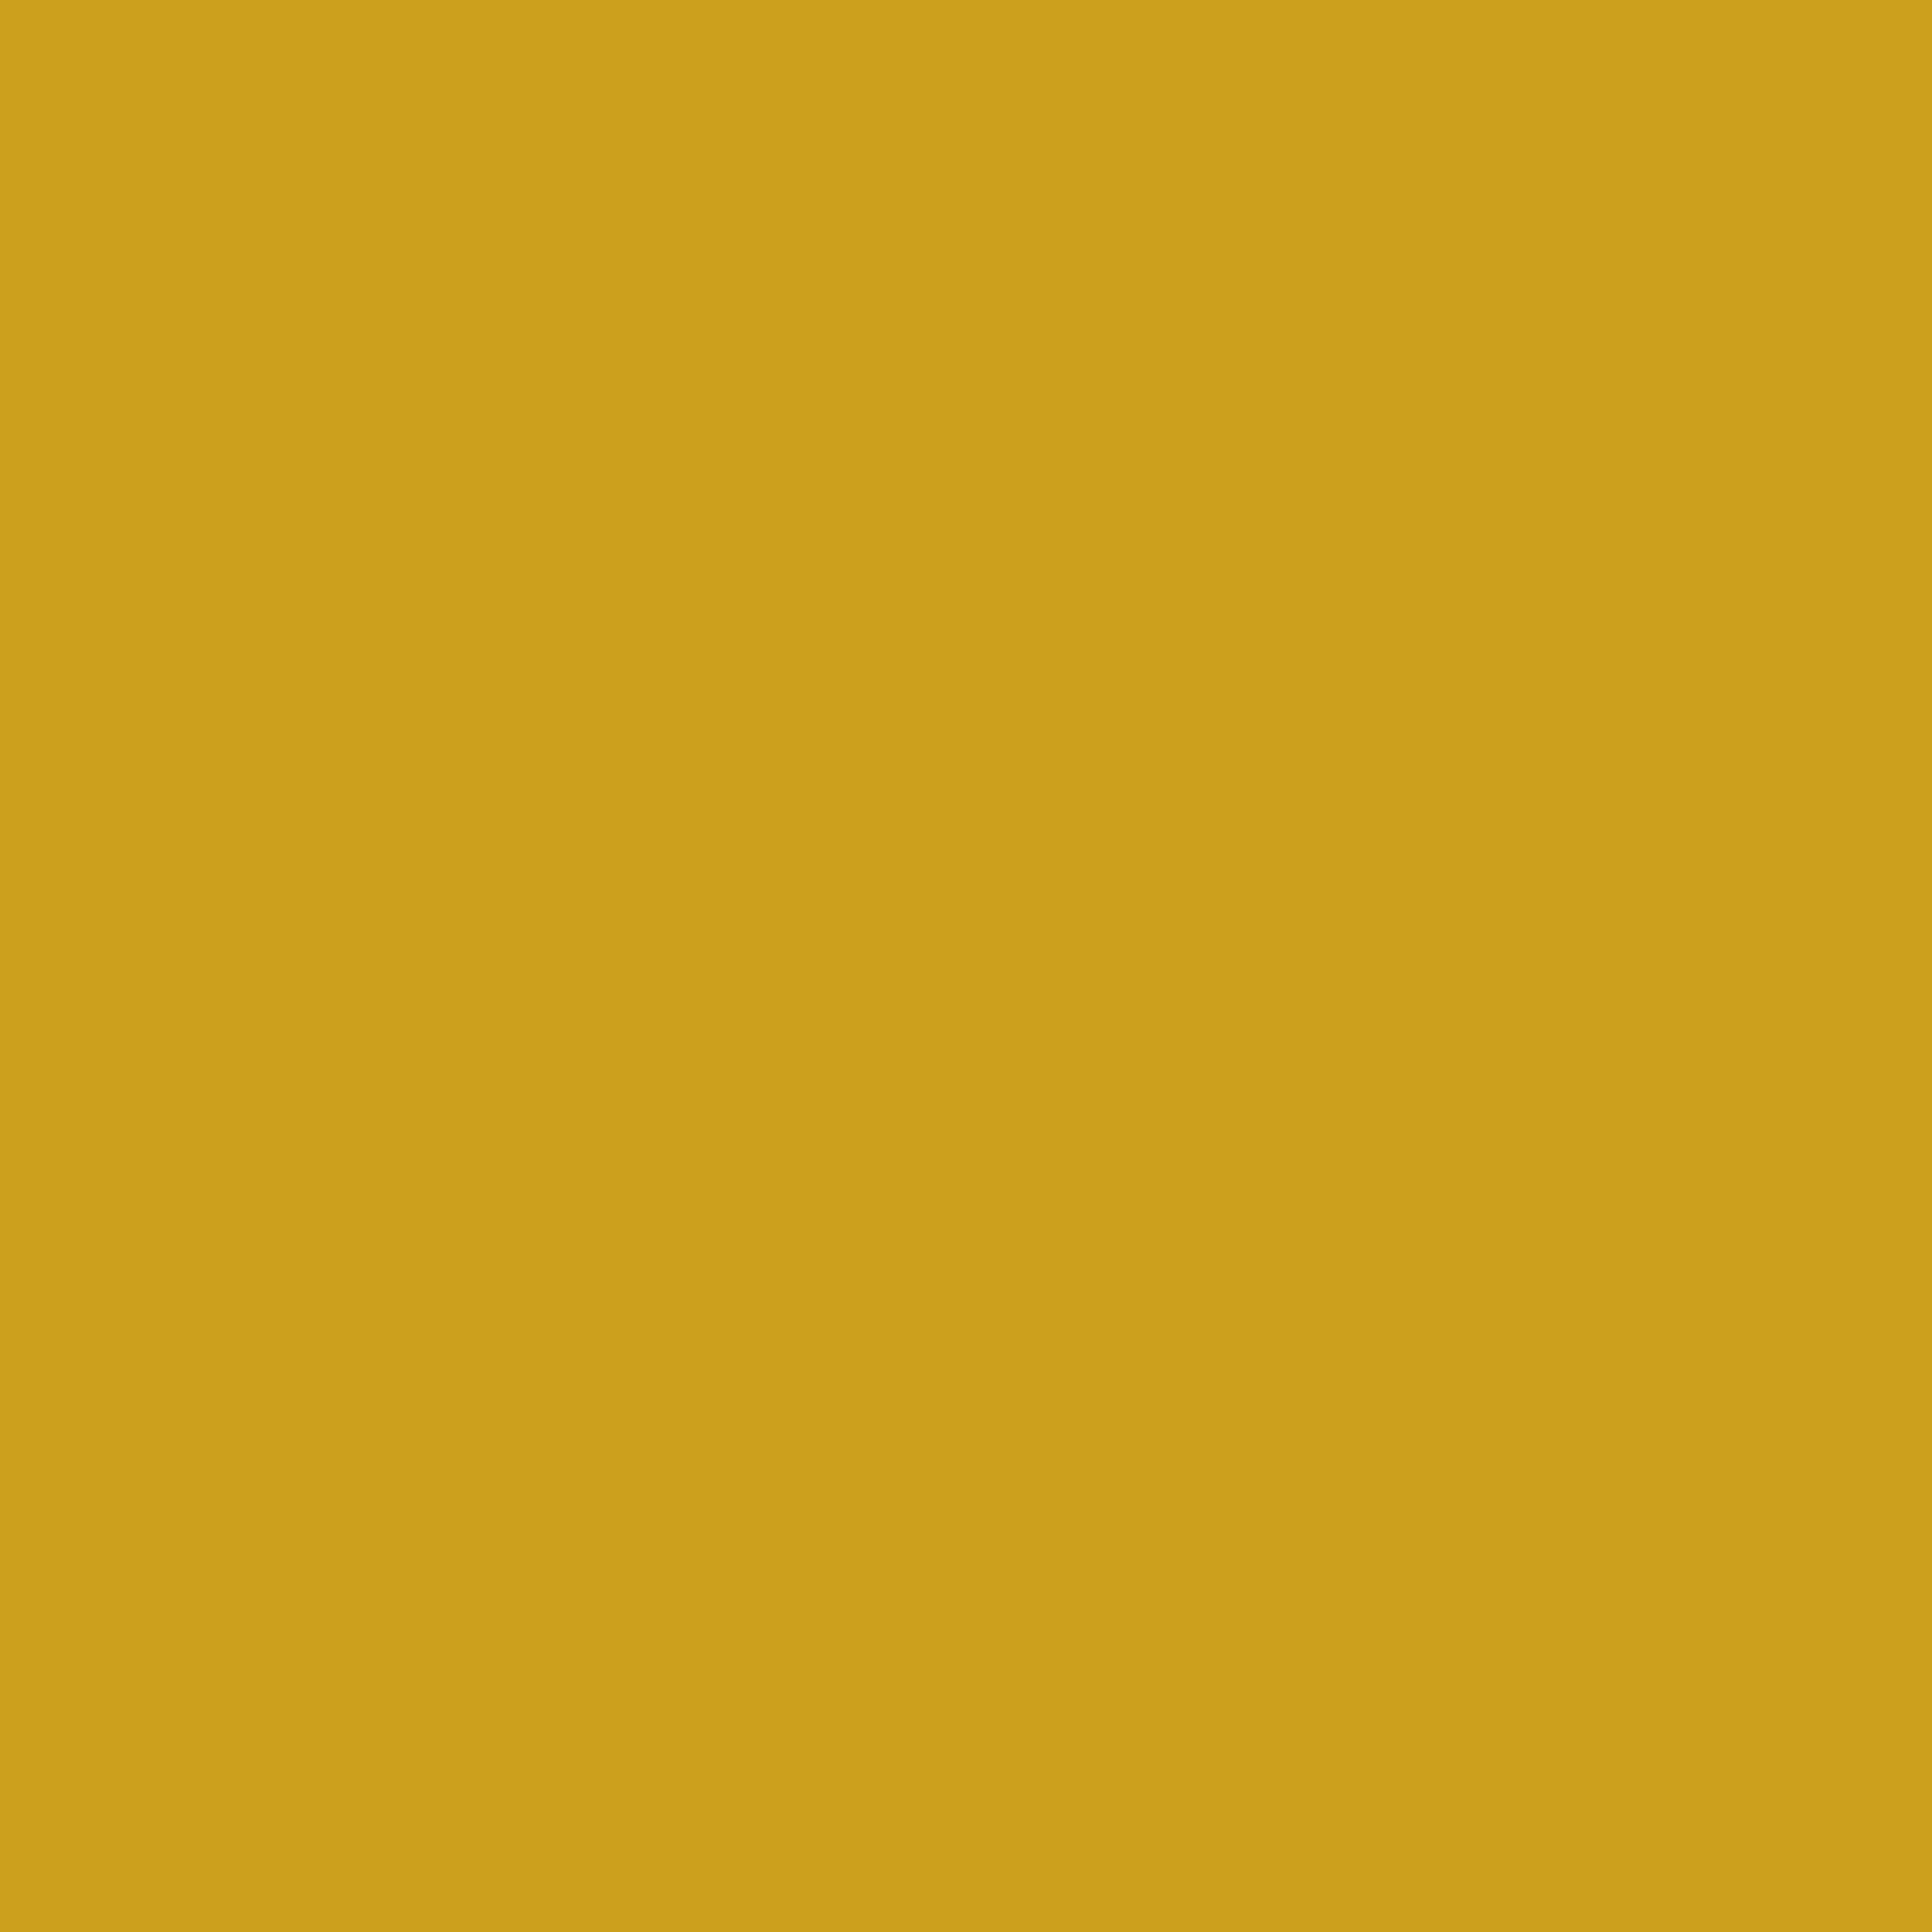 2732x2732 Lemon Curry Solid Color Background